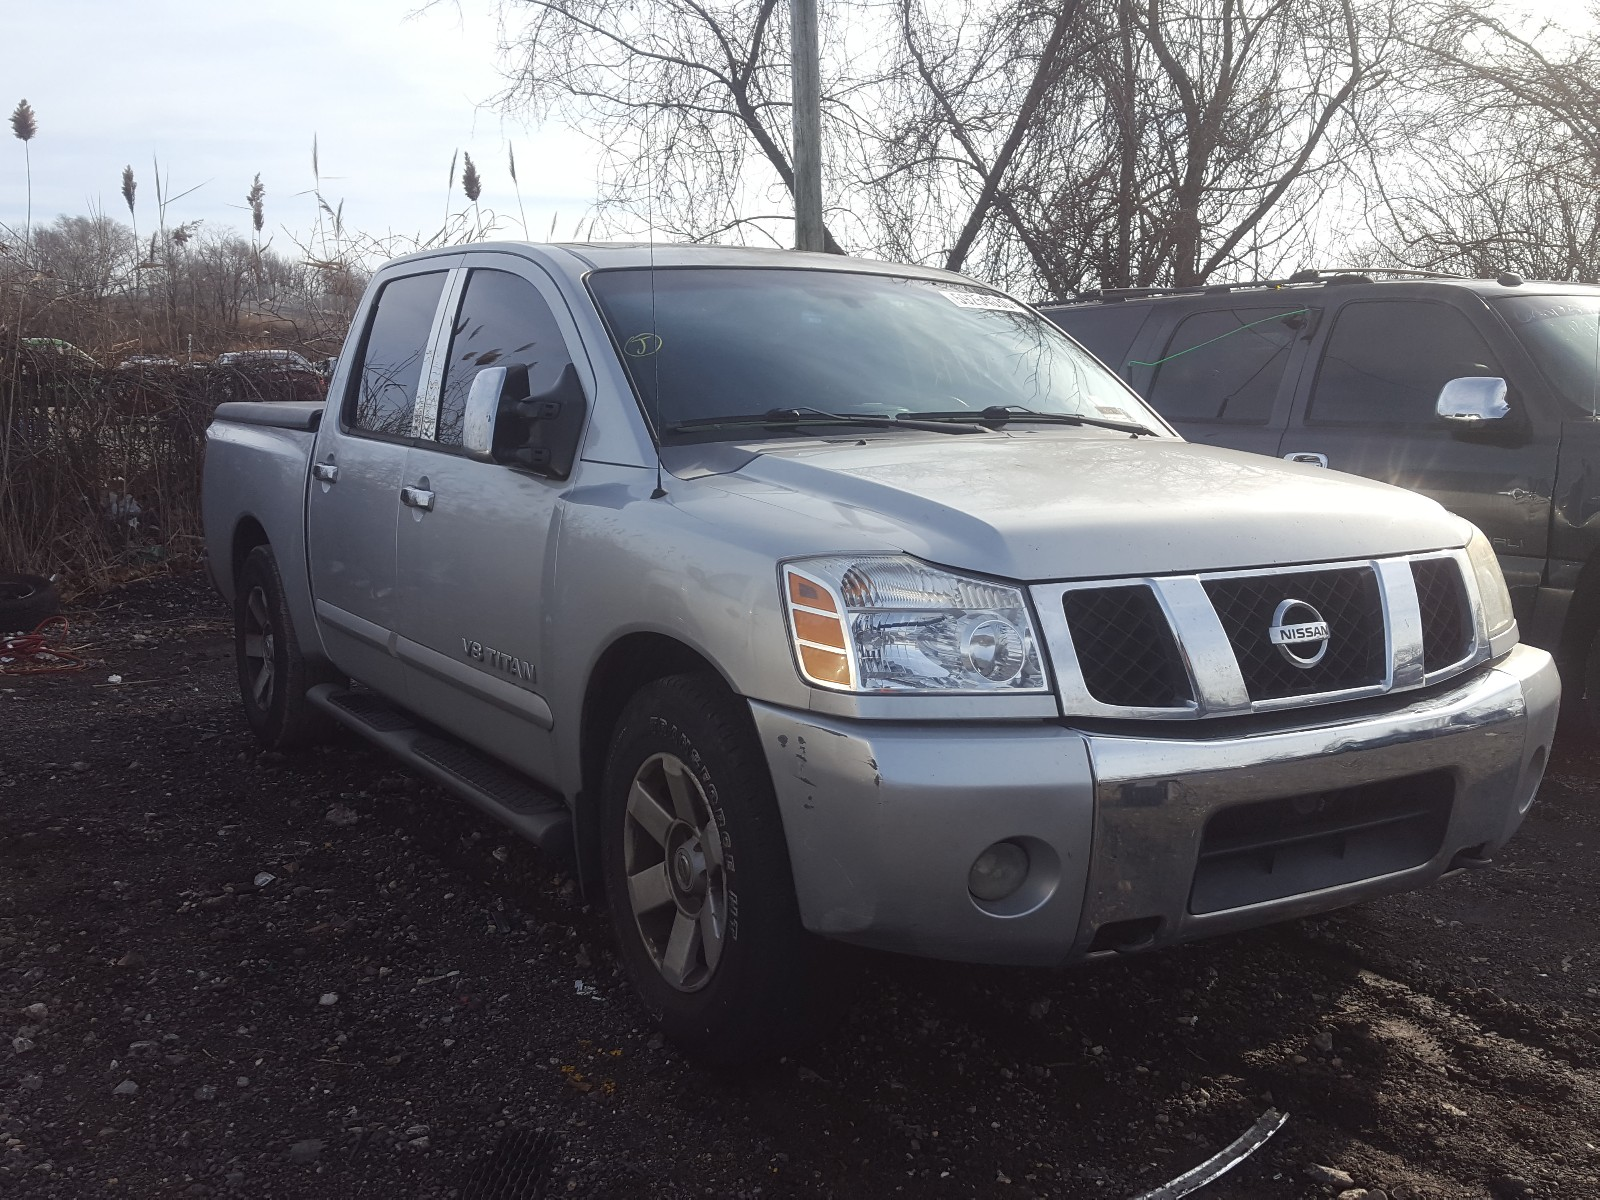 2007 Nissan Titan For Sale At Copart Baltimore Md Lot 59254030 Salvagereseller Com